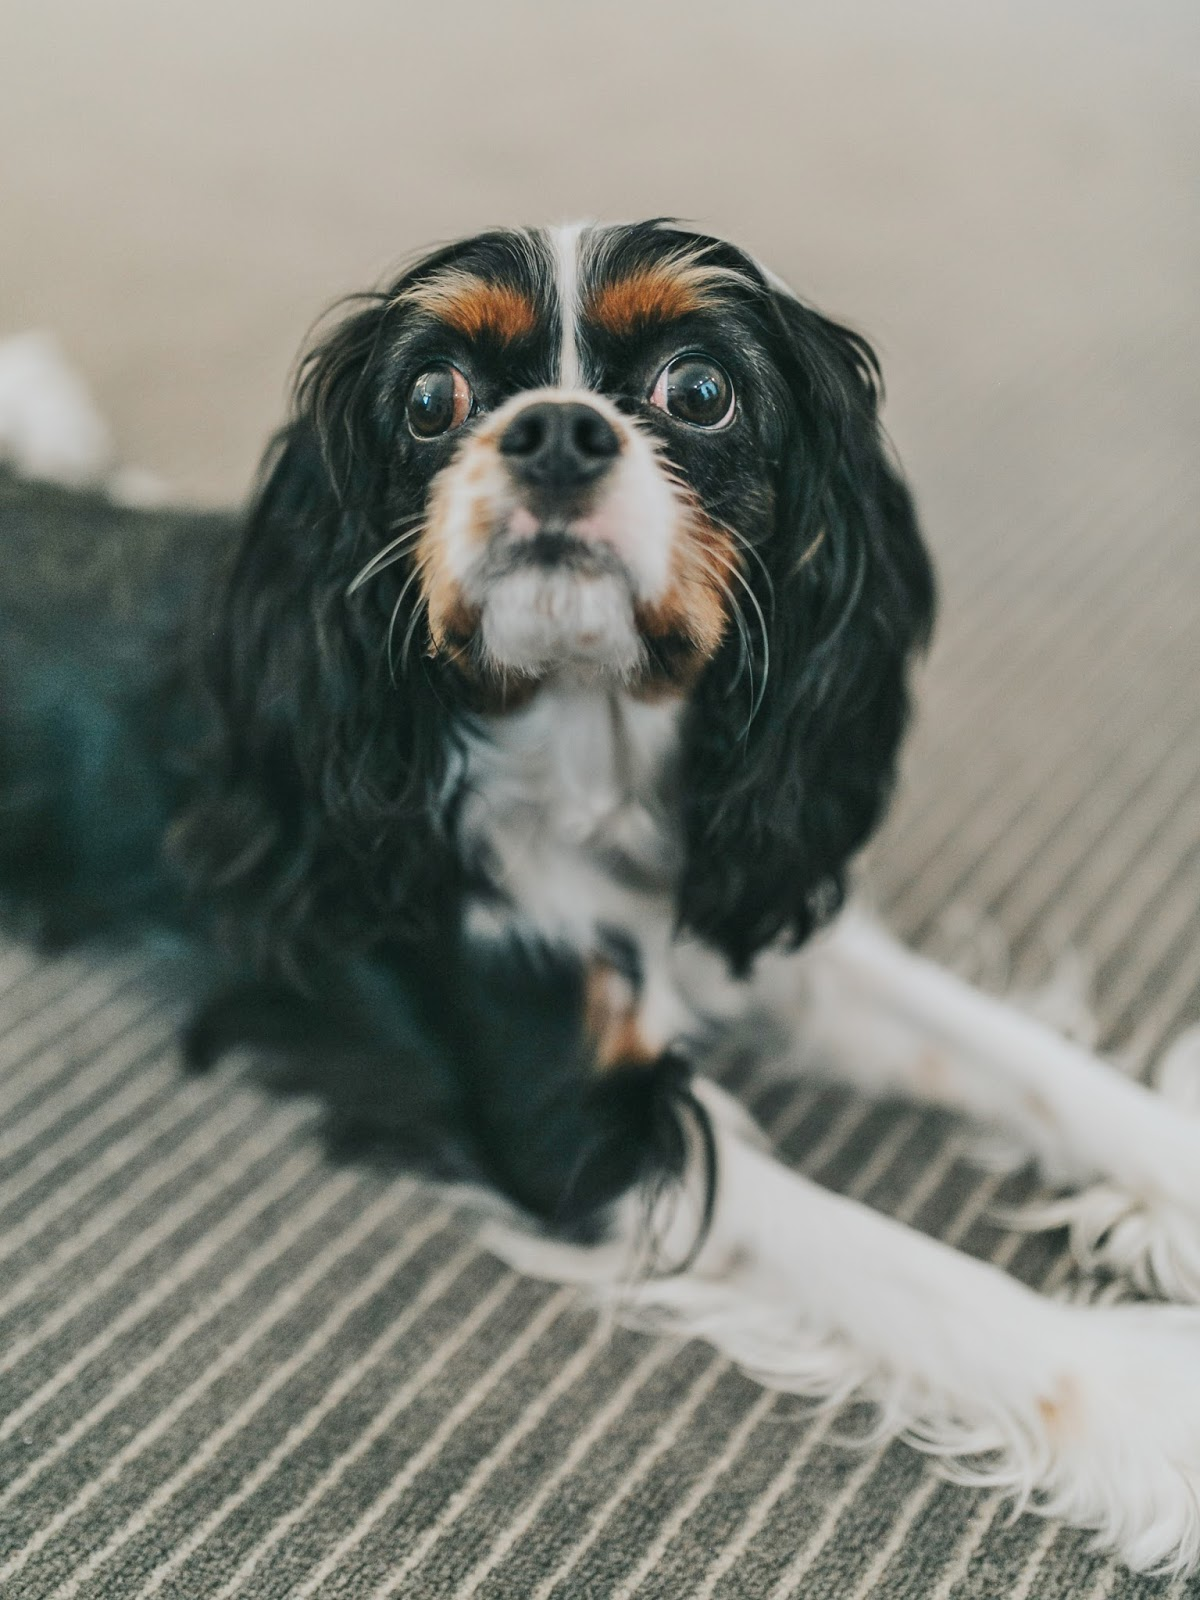 Bijuleni - Pet Friendly Hotel for a Cavalier King Charles Spaniel